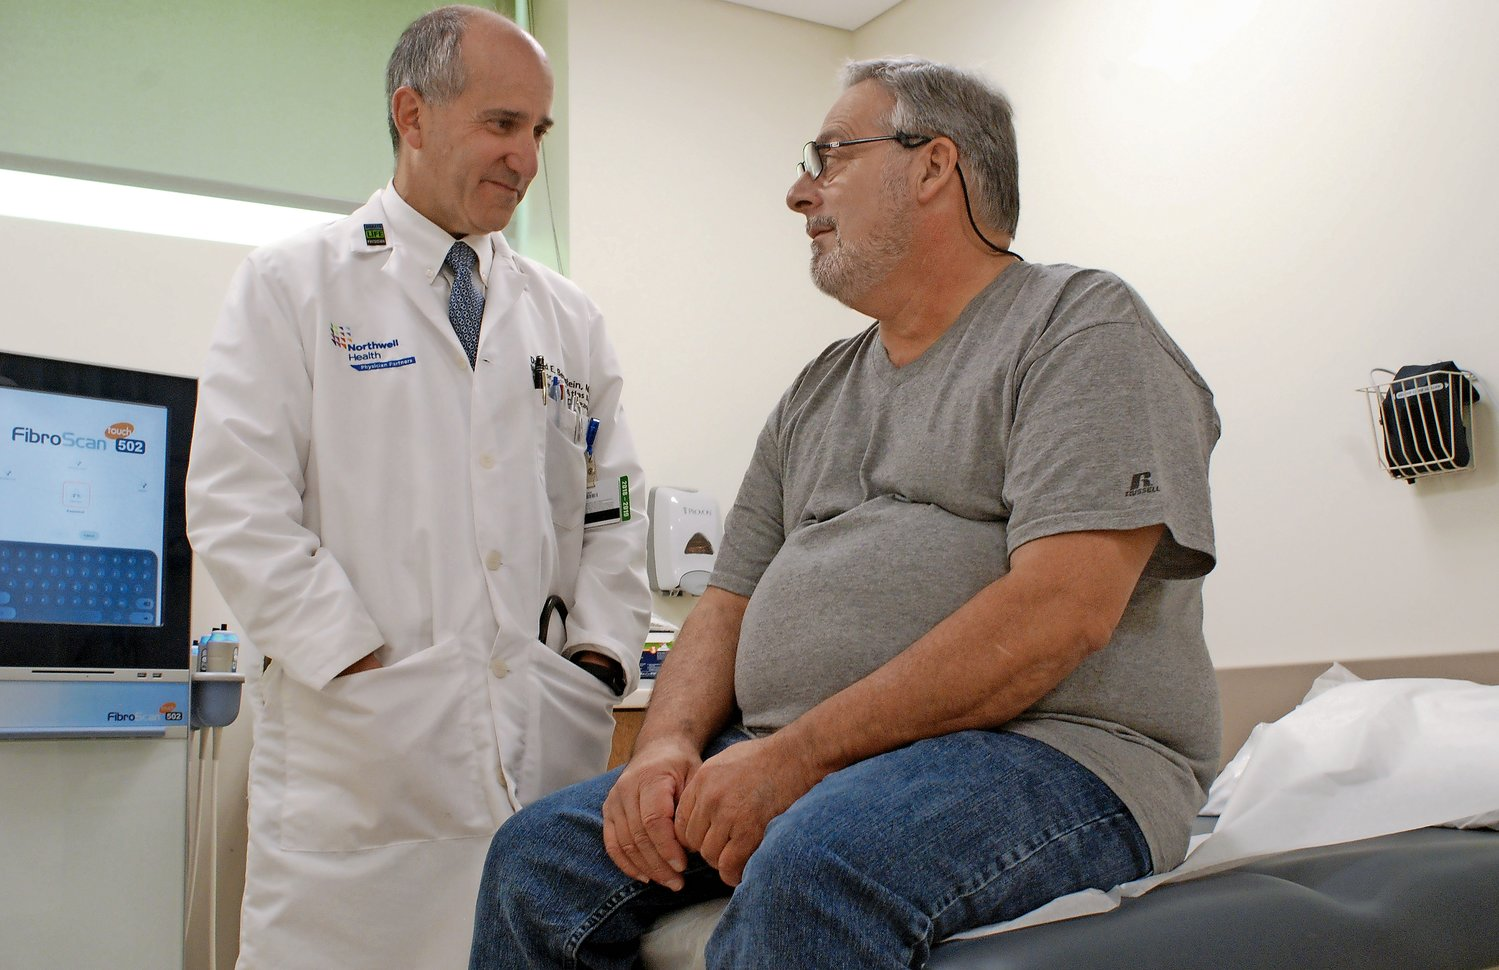 Liver transplant patient George Conte, of Floral Park, consulted recently with Dr. David Bernstein, Northwell Health's chief of hepatology, at the Sandra Atlas Bass Center for Liver Diseases at North Shore University Hospital in Manhasset. Conte received a new liver last August, at Montefiore Hospital in the Bronx. Patients no longer need to leave Long Island for liver transplants now that Northwell offers them.